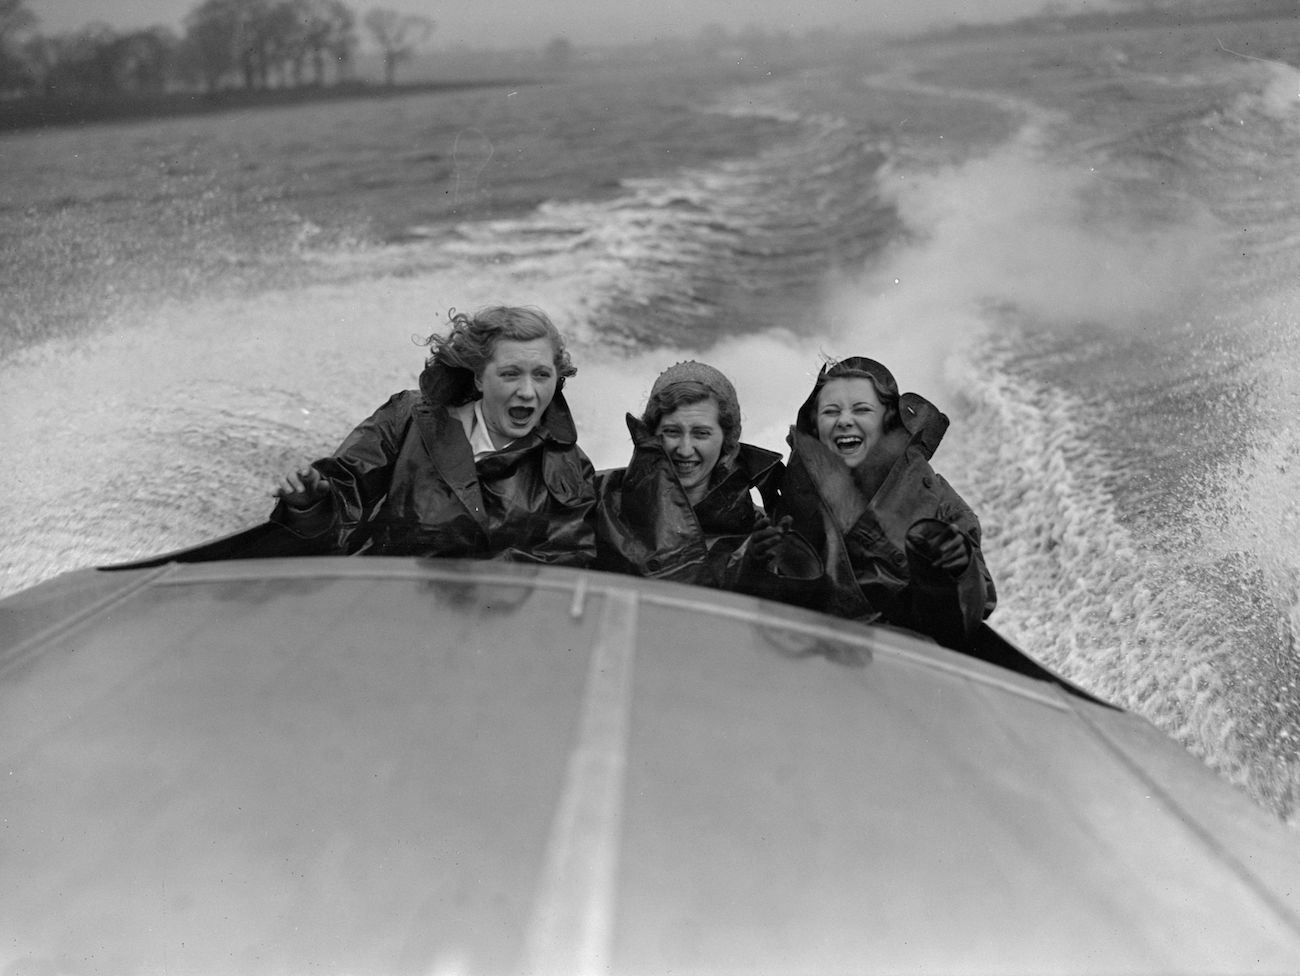 March 1931: British Aviatrix Amy Johnson (1903 - 1941) and British actress Anna Neagle (1904 - 1986) at the opening of the speedboat season. (Photo by Fox Photos/Getty Images)